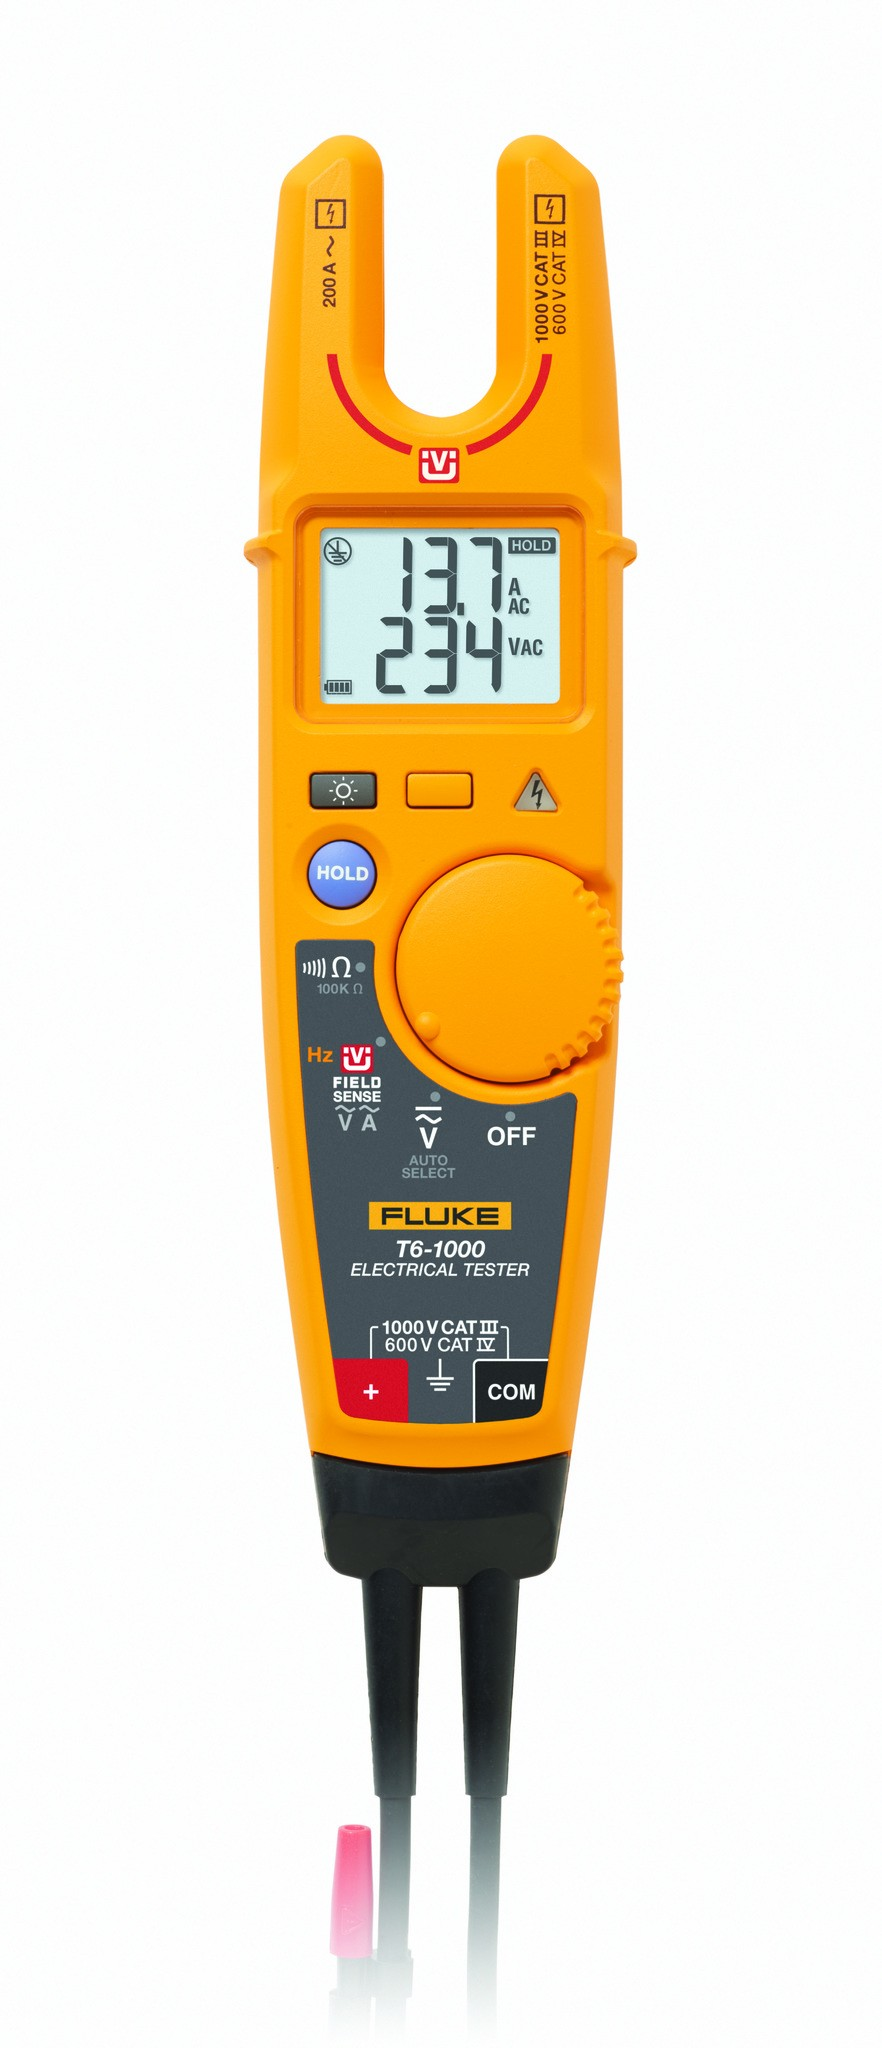 Fluke T6-1000 Pro Electrical Voltage Tester with FieldSense Technology